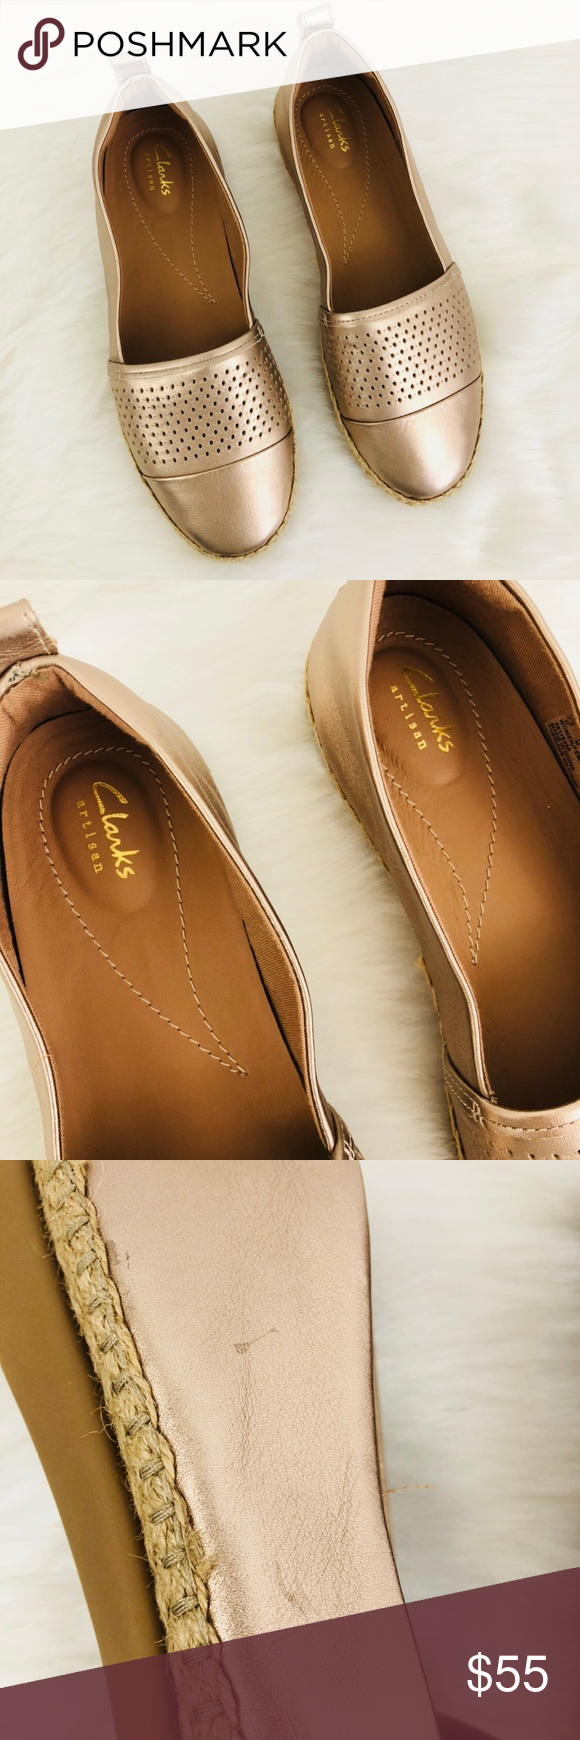 dd6e8d08b4a3 Clarks Artisan Reeney Helen Rose Gold Flat New without tags and box. Rose  gold leather. Espadrille Flat. Does have some markings pictured. Clarks  Shoes ...